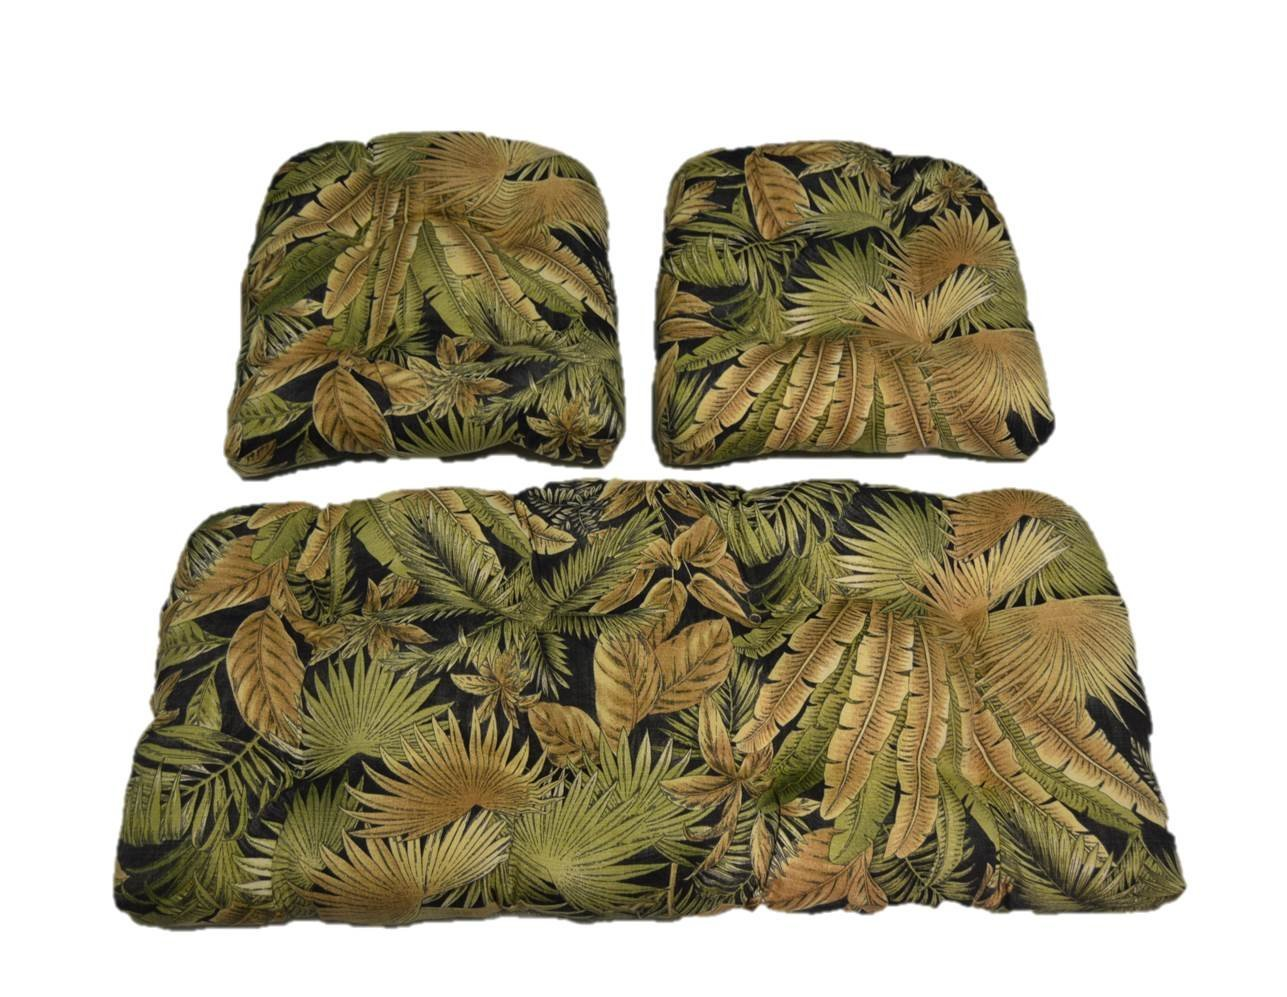 Tommy Bahama Black Green Tan Tropical Palm Leaf Bahama Breeze Cushions for Wicker Loveseat Settee & 2 Matching Chair Cushions